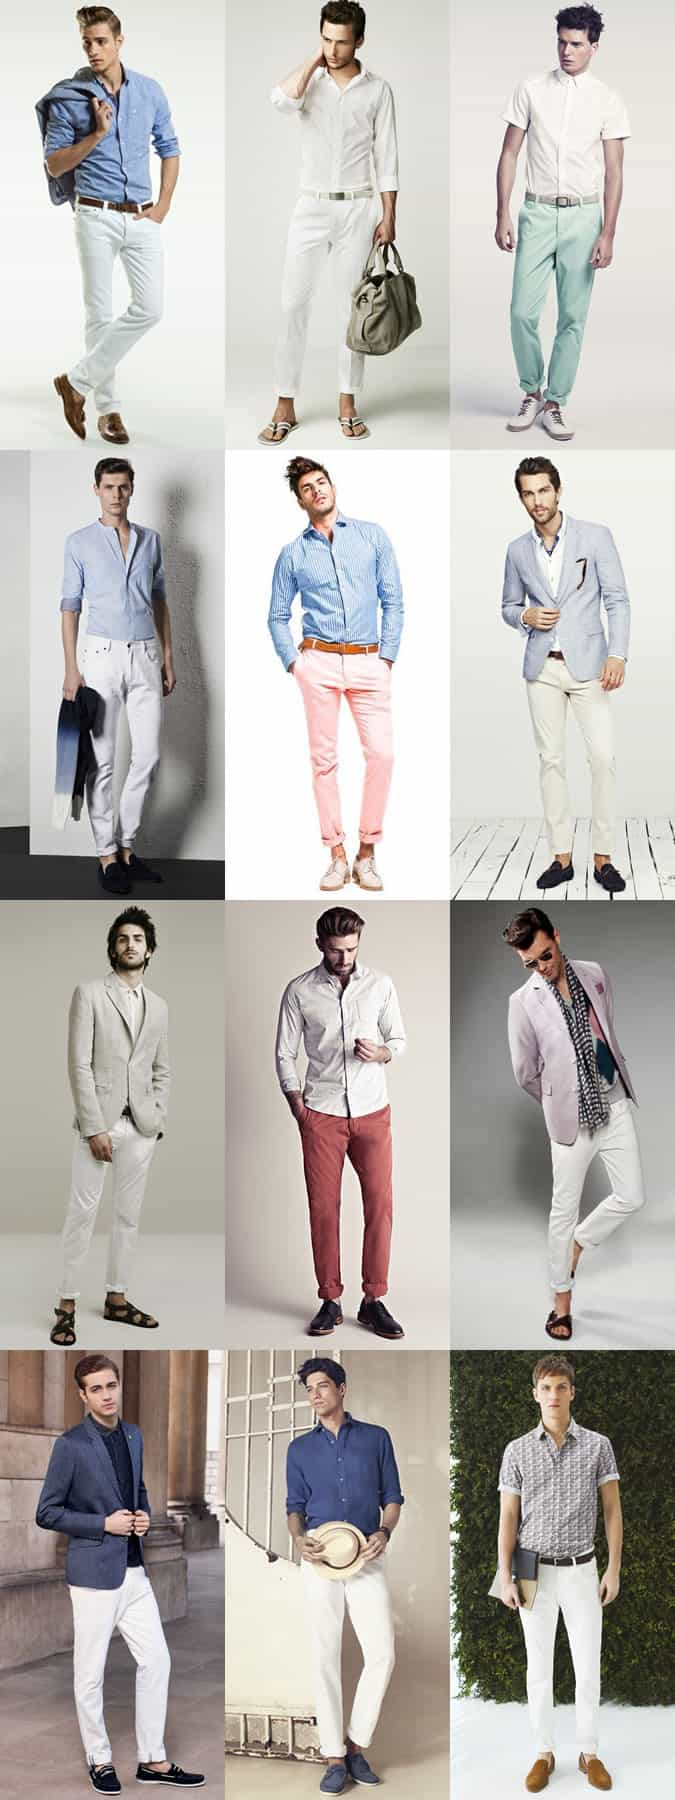 Men's Summer Wedding Abroad Outfit Inspiration Lookbook